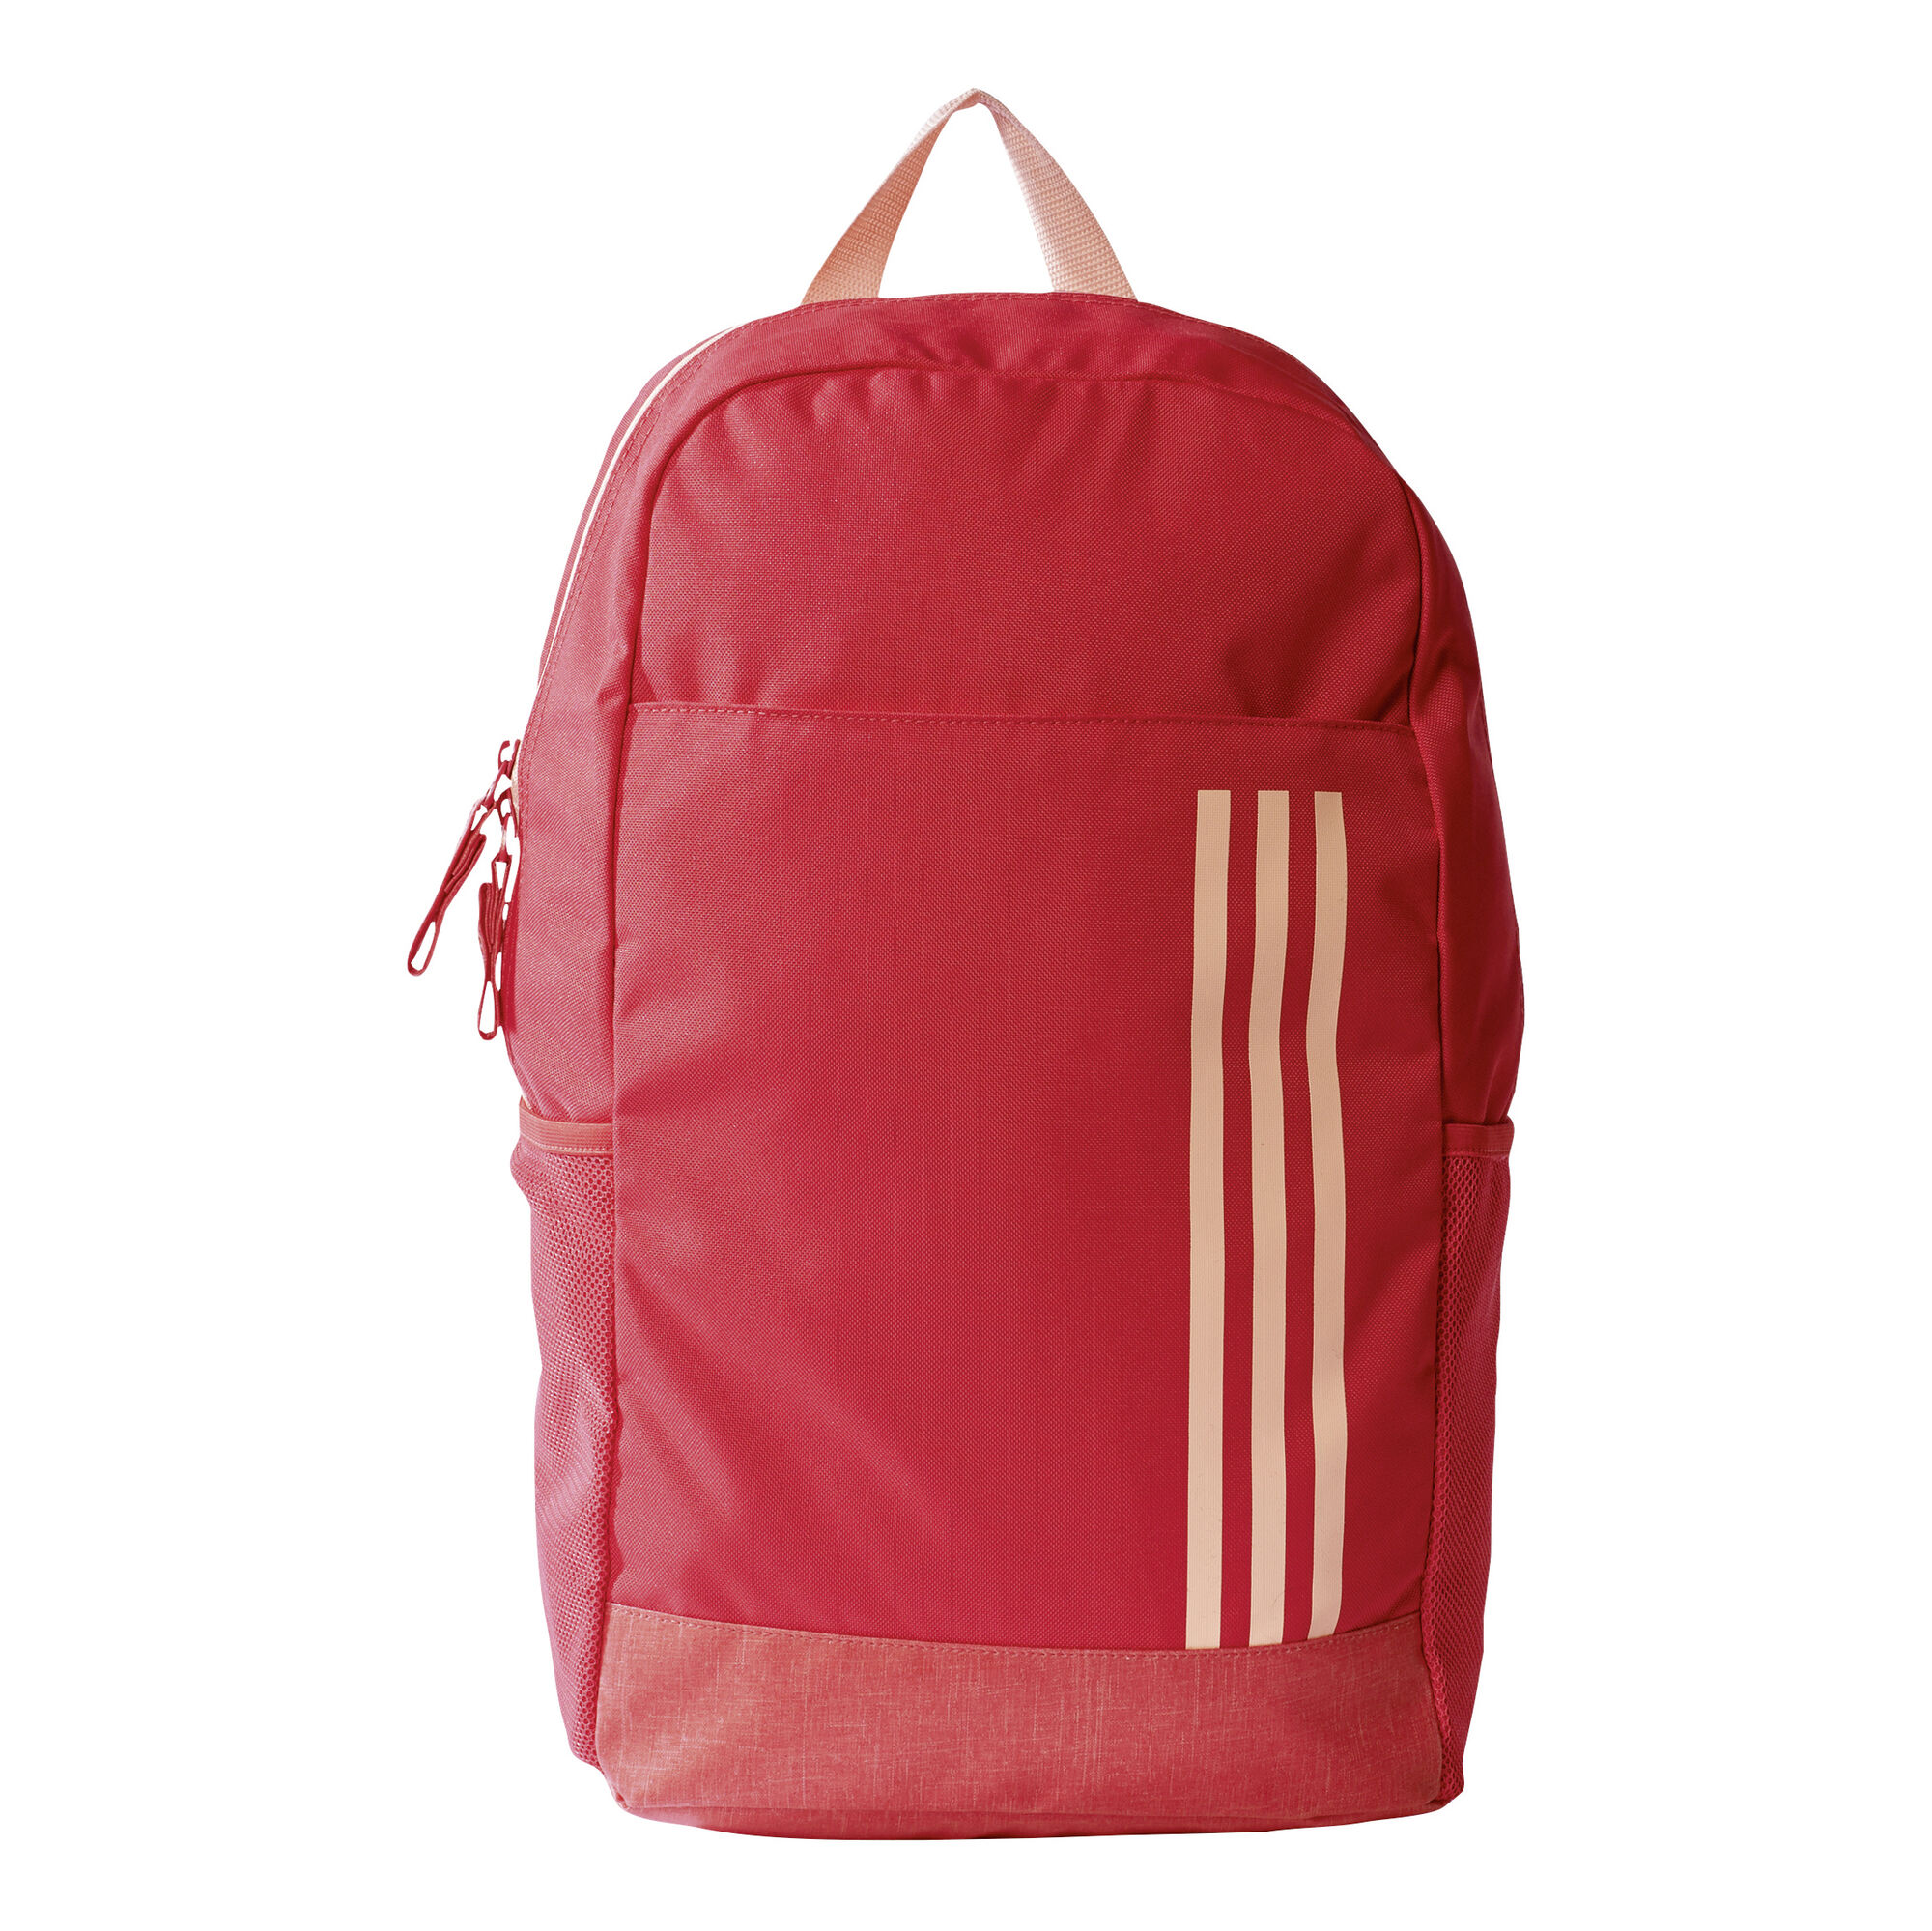 1fc5f6fe6681 adidas · adidas · adidas · adidas · adidas · adidas. Classic 3 Stripes  Backpack ...